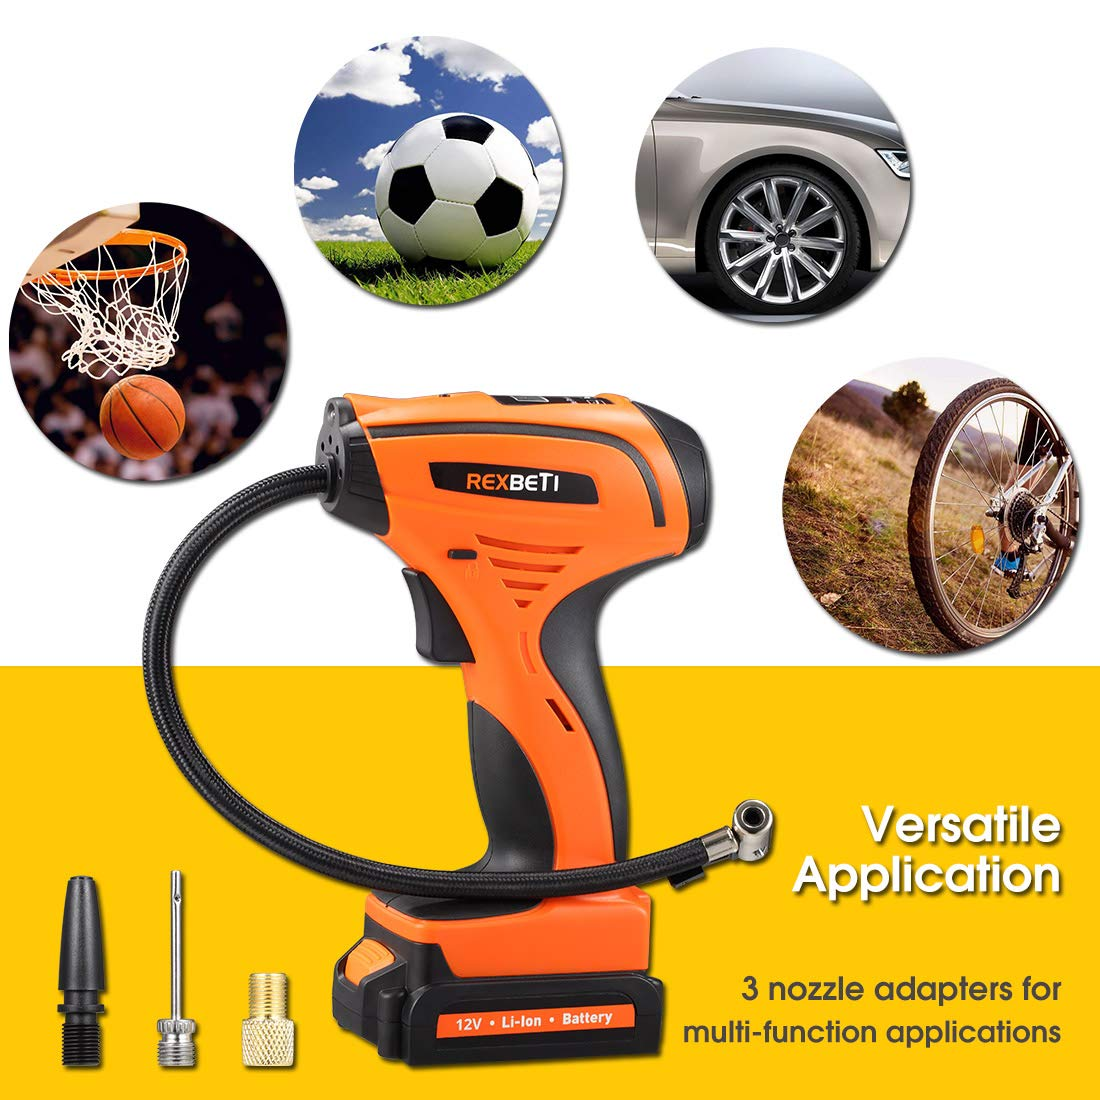 REXBETI Tire Inflator, Portable 12V Cordless Air Compressor for Tires, with Rechargeable Lithium-ion Battery and 12V Car Power Adapter, Easy to Read Digital Pressure Gauge, LED Lighting, 150PSI by REXBETI (Image #7)